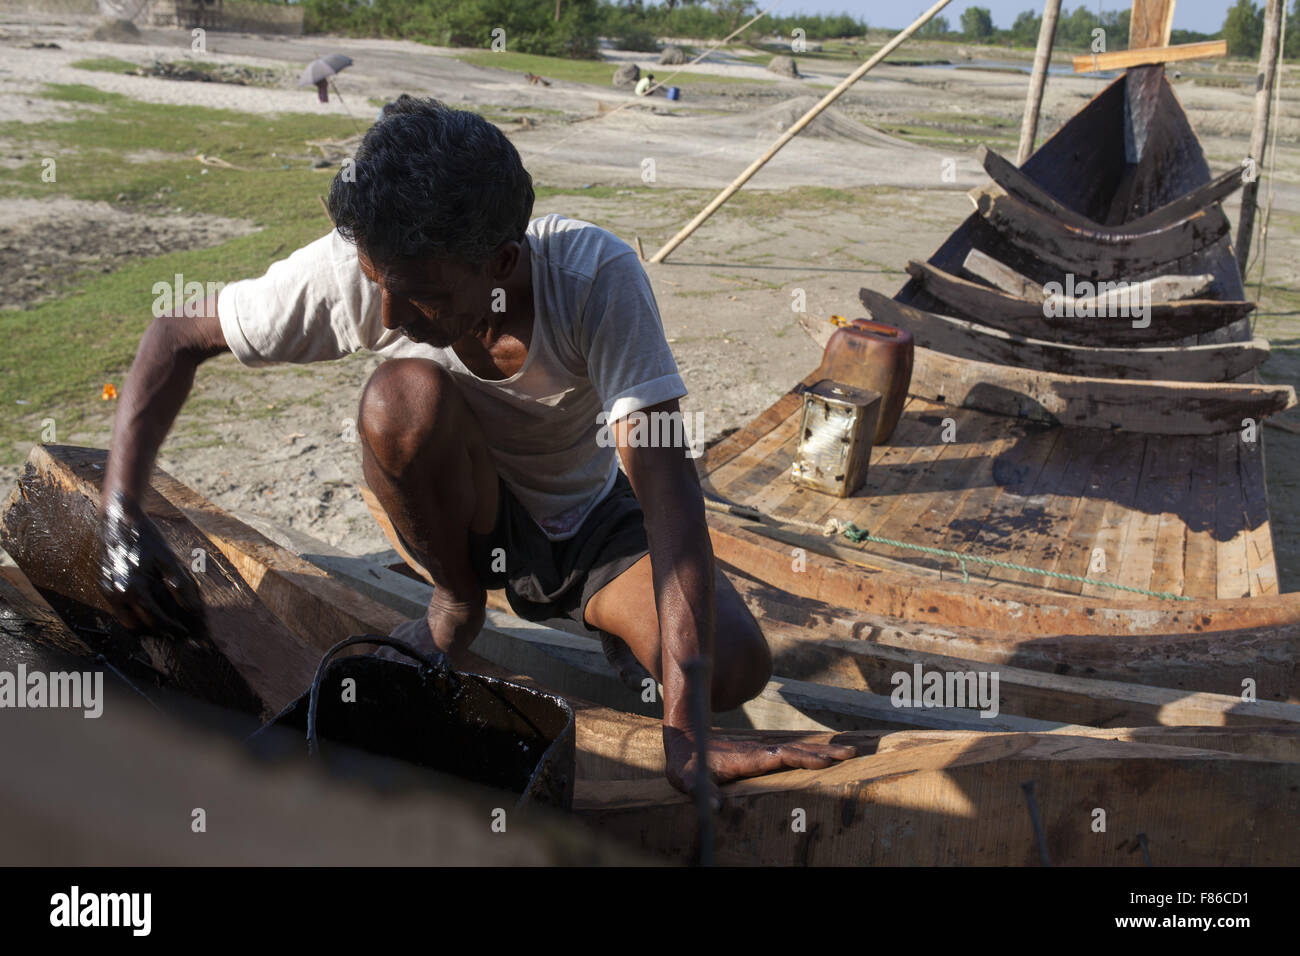 Nov. 29, 2015 - Cox'S Bazar, Bangladesh - COX's BAZAR, BANGLADESH - November 29: A man making new boat in - Stock Image